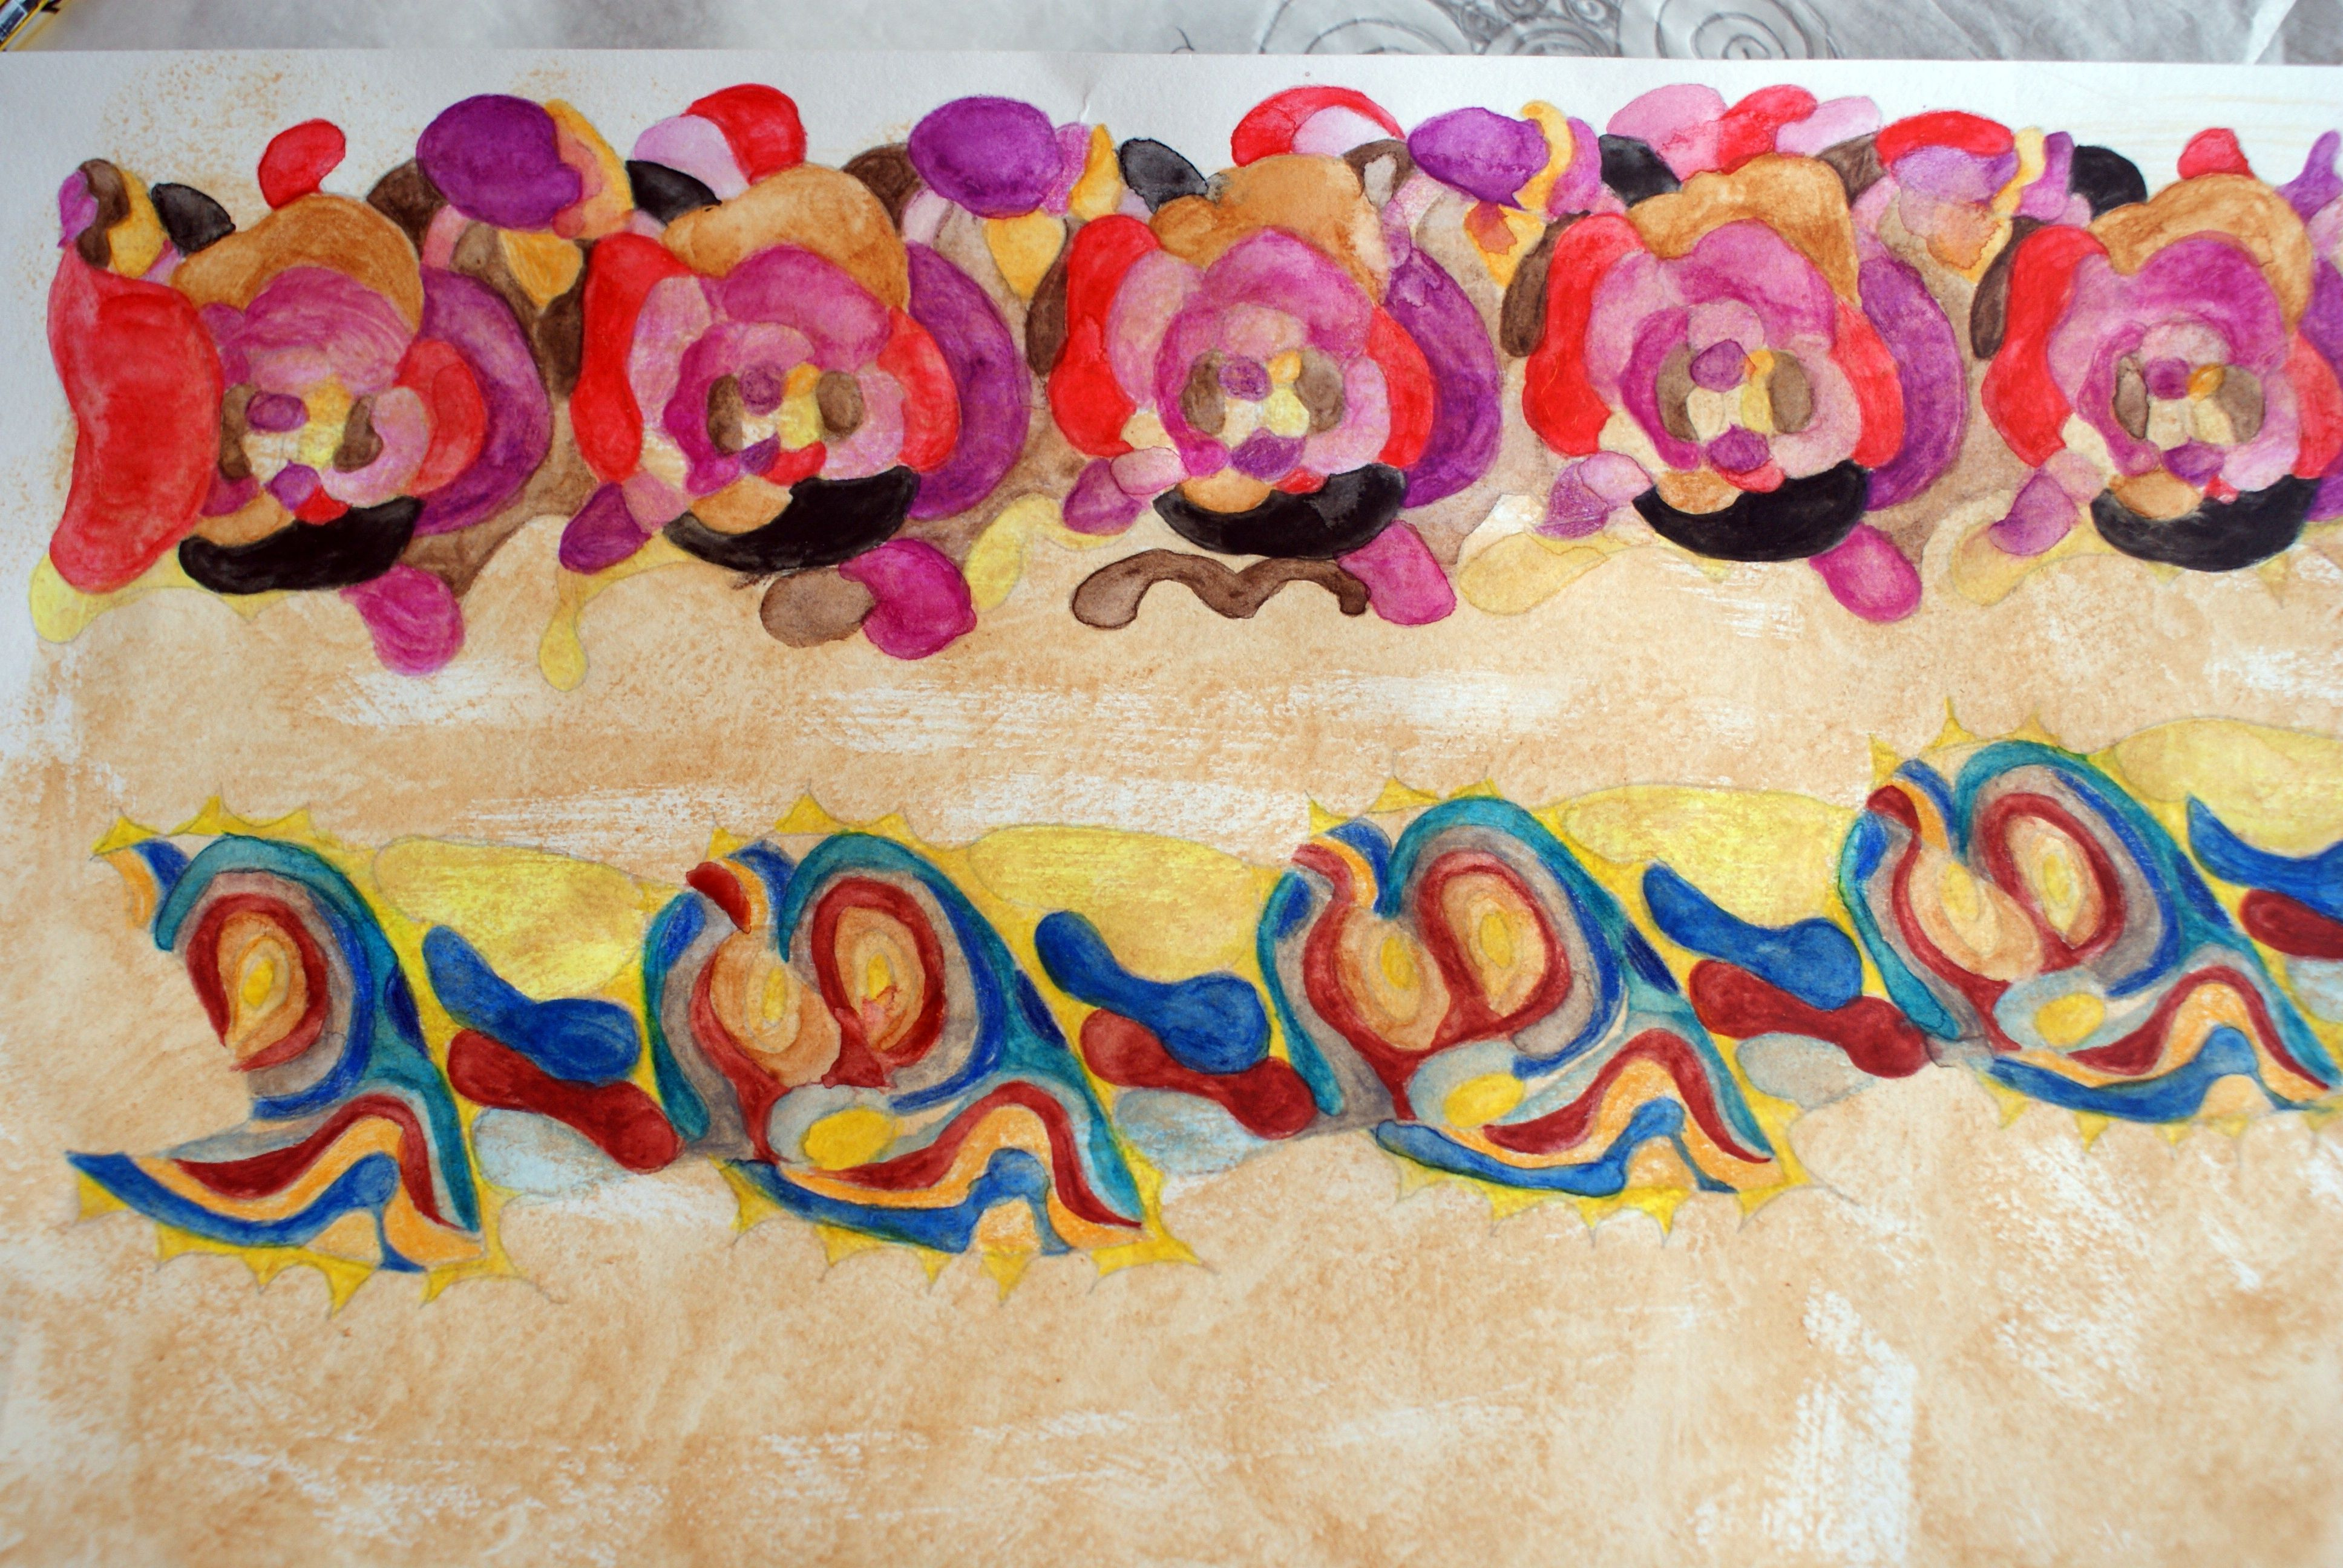 Designs for a textile border. Water soluble pencil and acrylic on paper. By Kirsty Basram